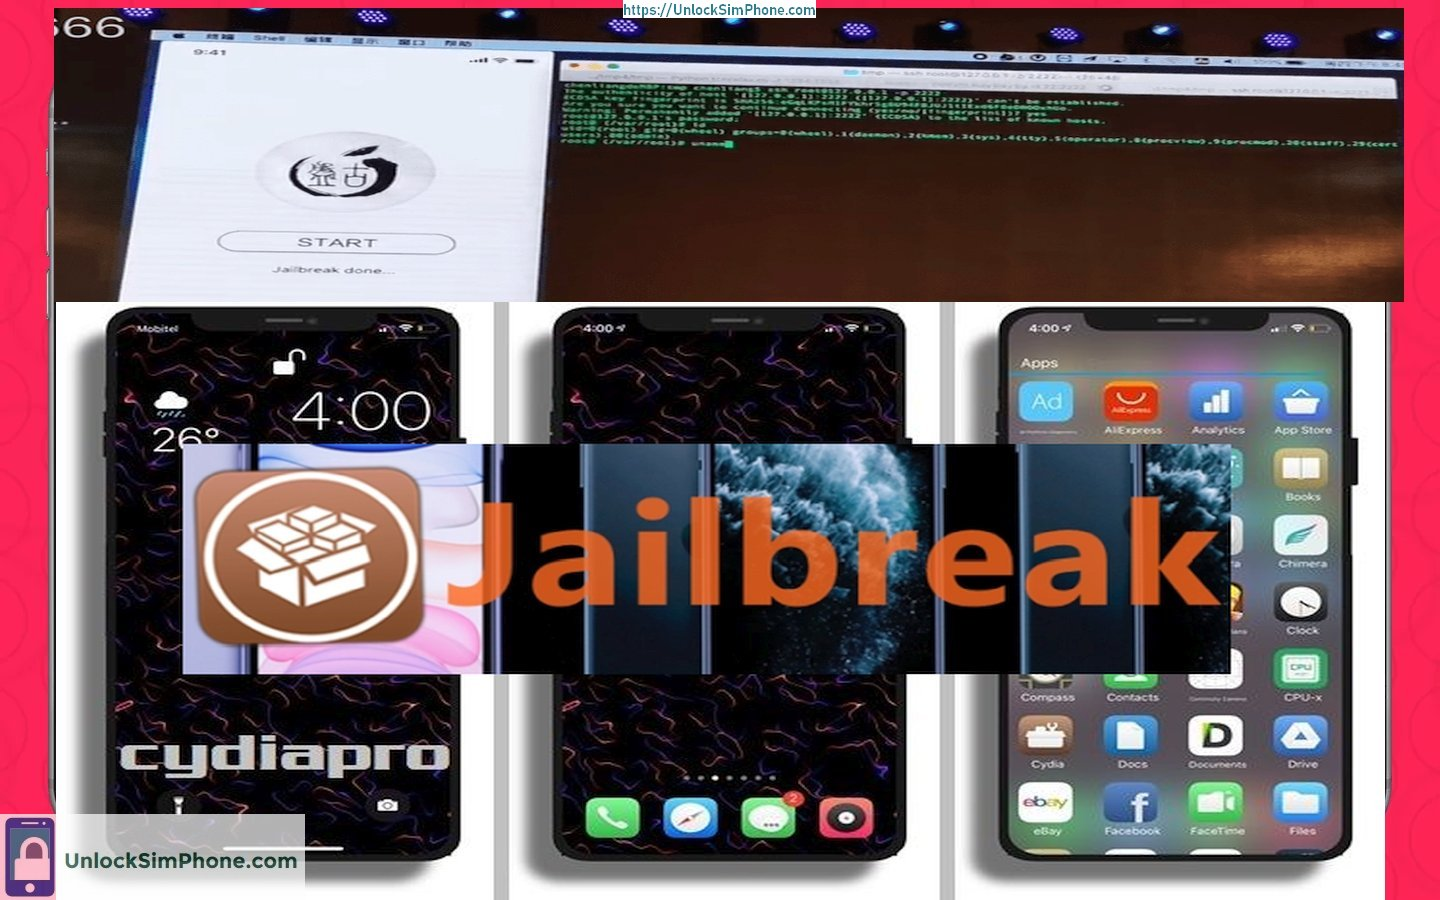 Jailbreak iOS download